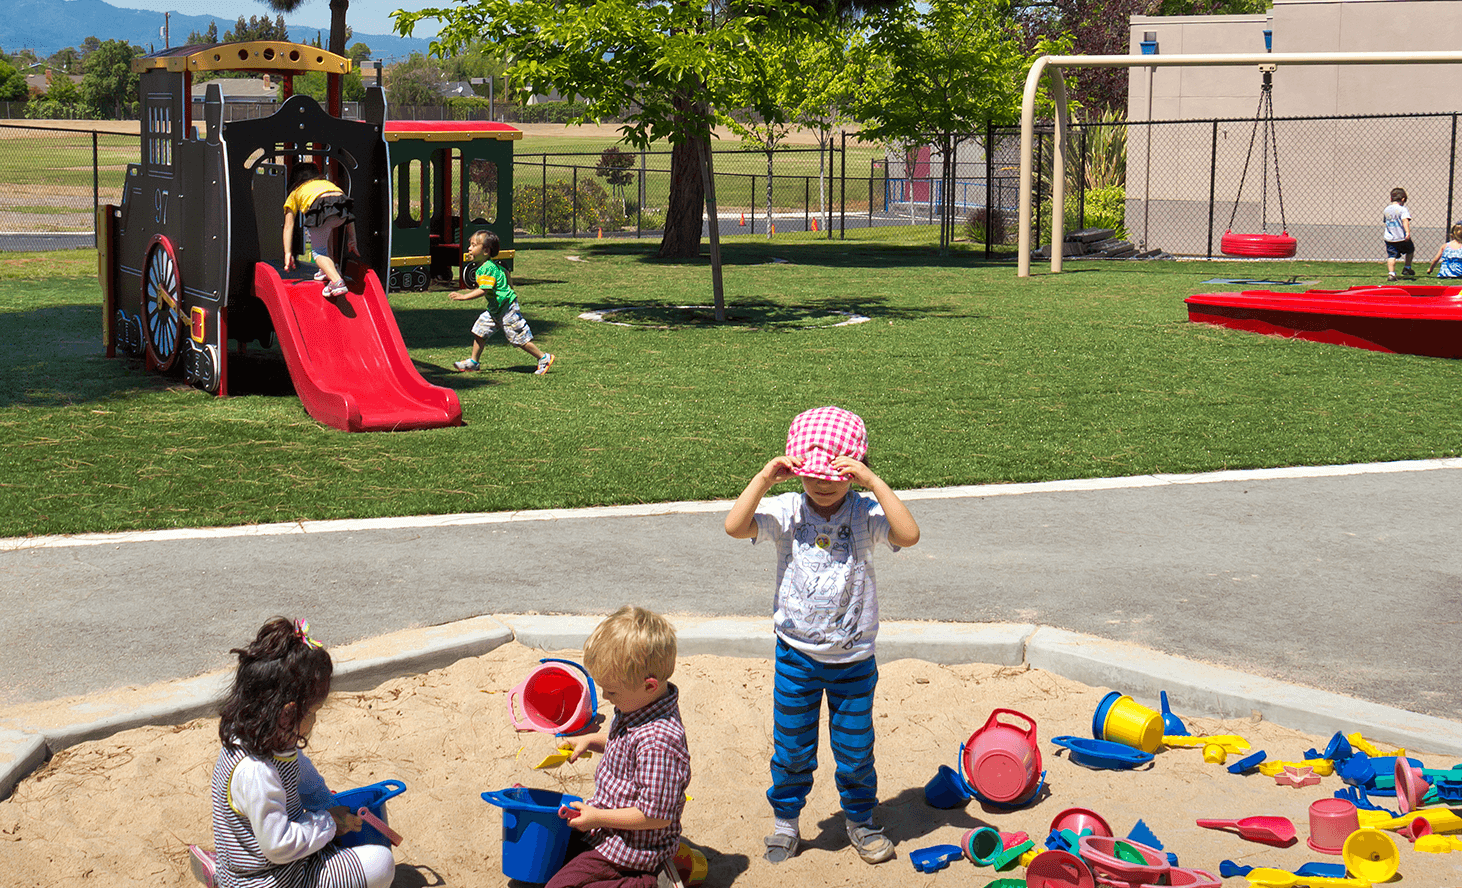 Playground | Challenger School - Harwood | Private School In San Jose, California